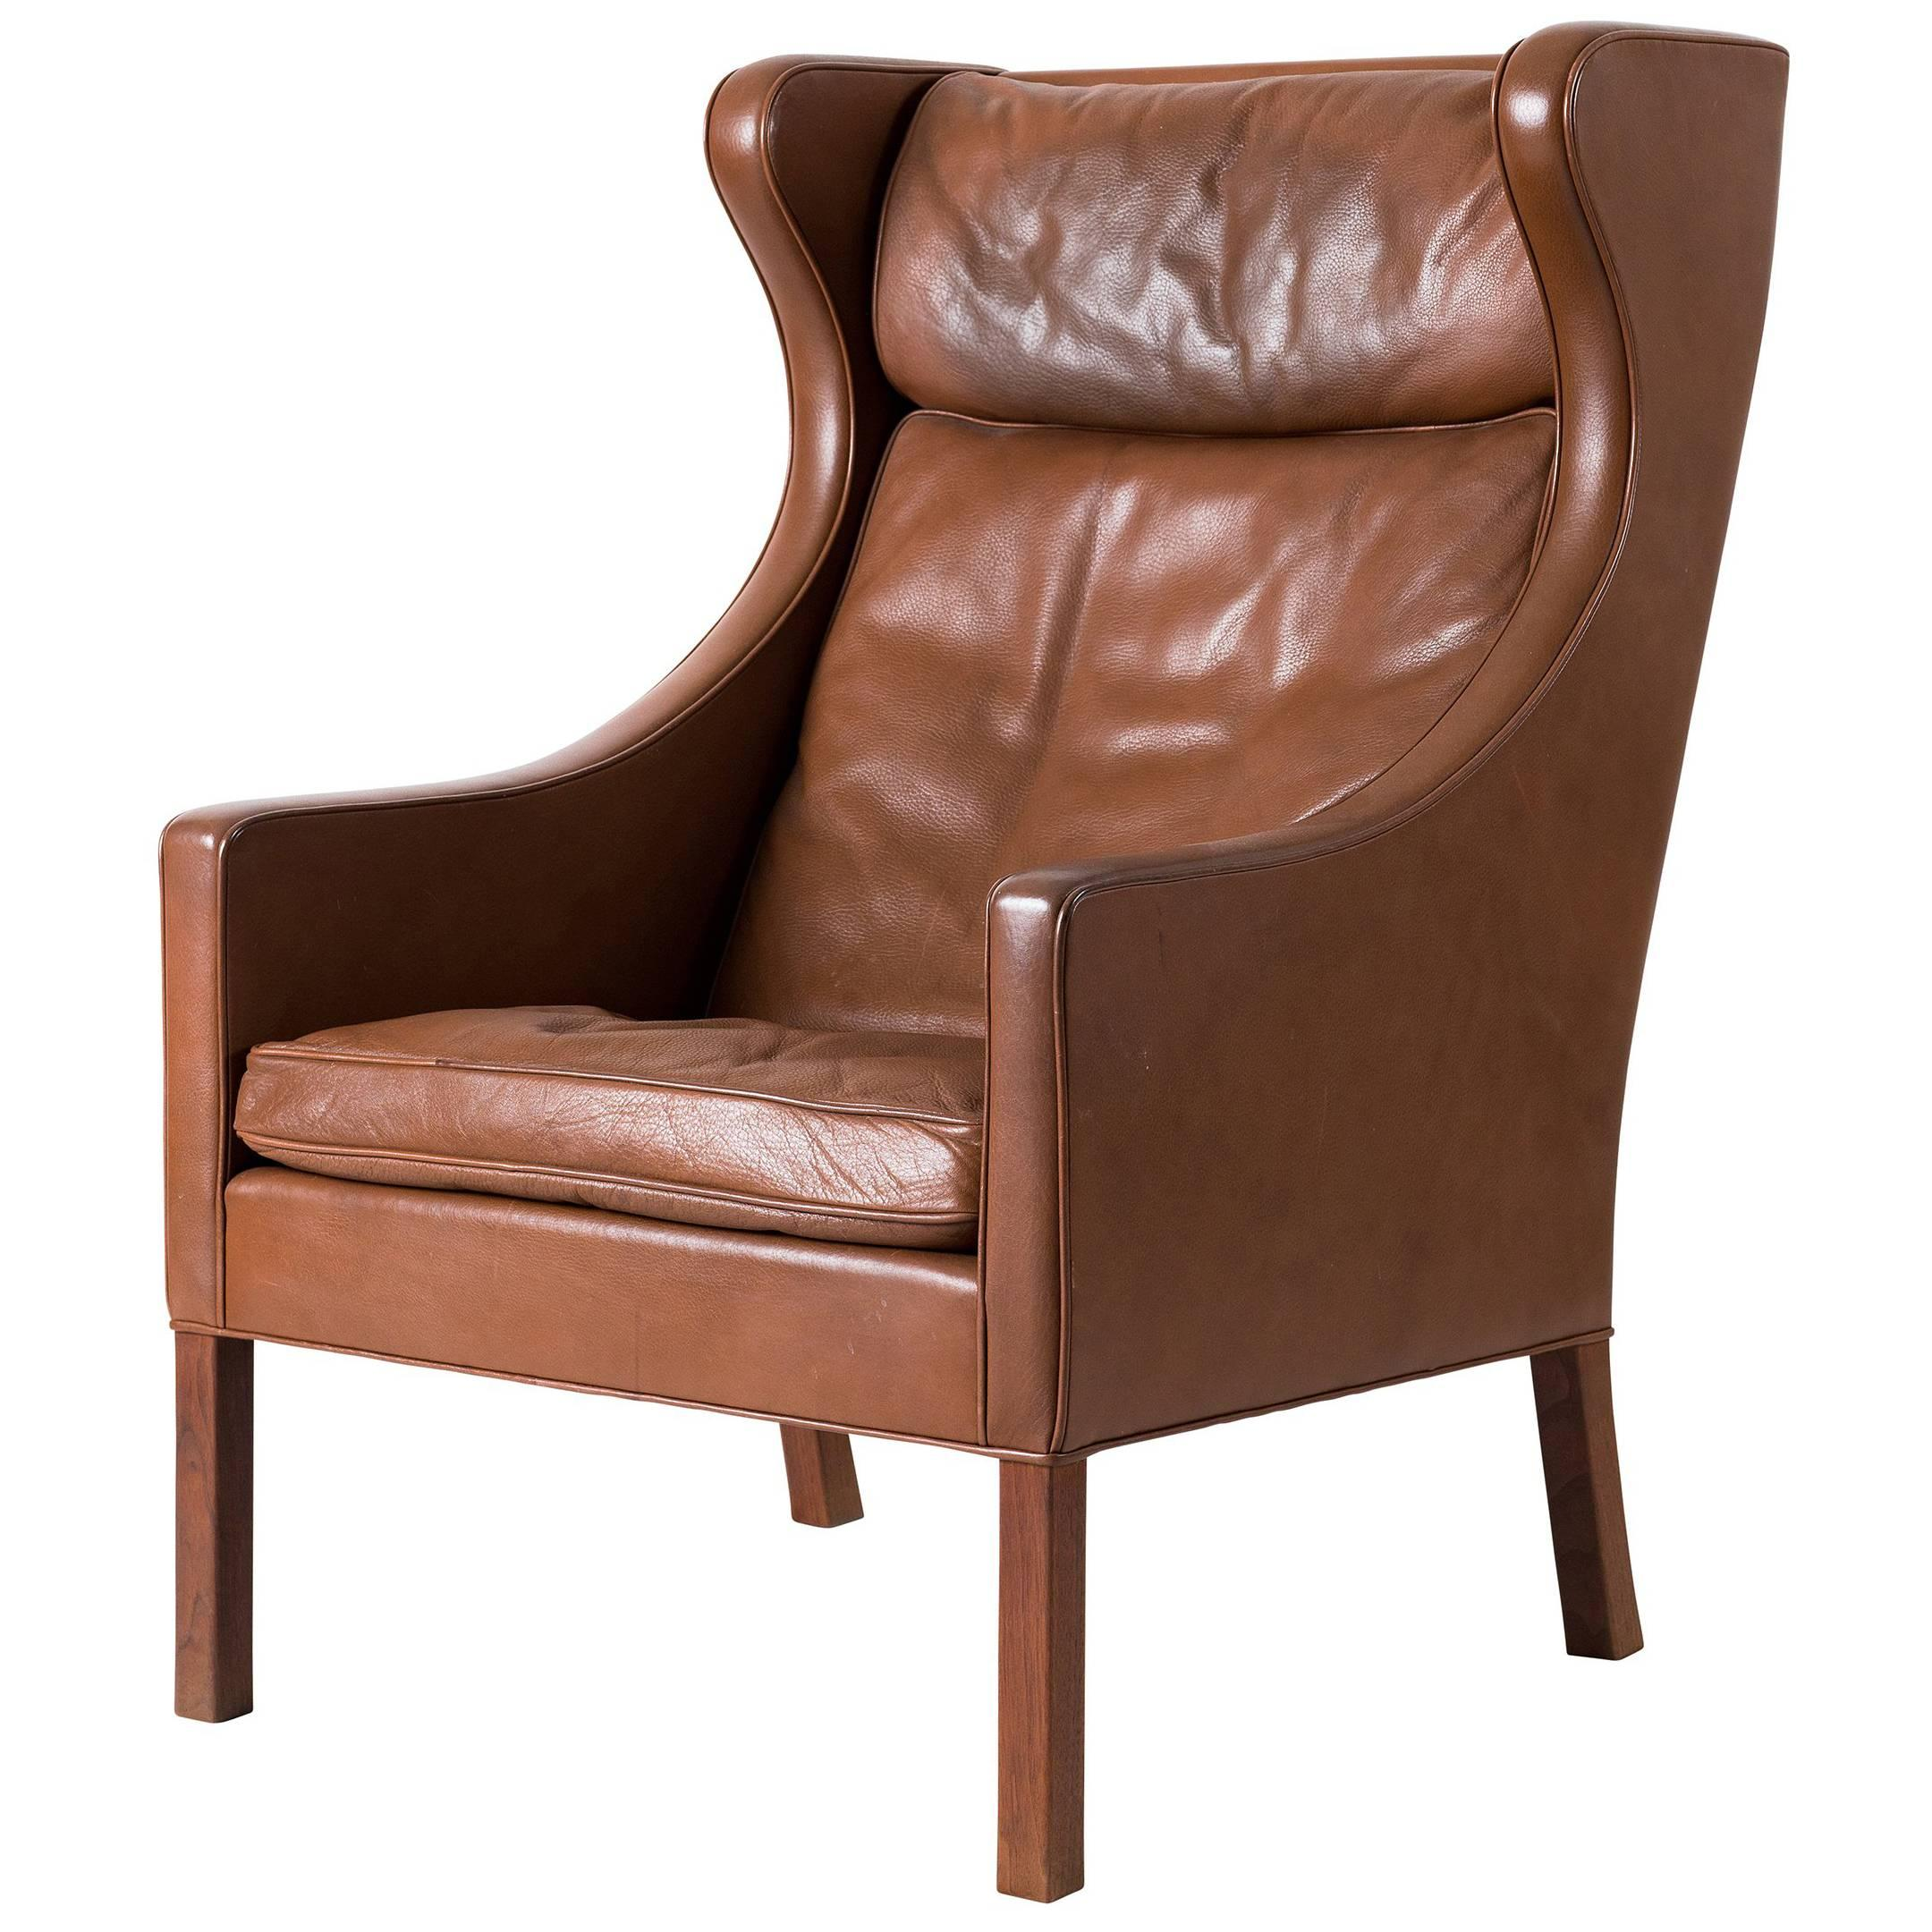 Lovely Børge Mogensen Leather Wingback Chair 1